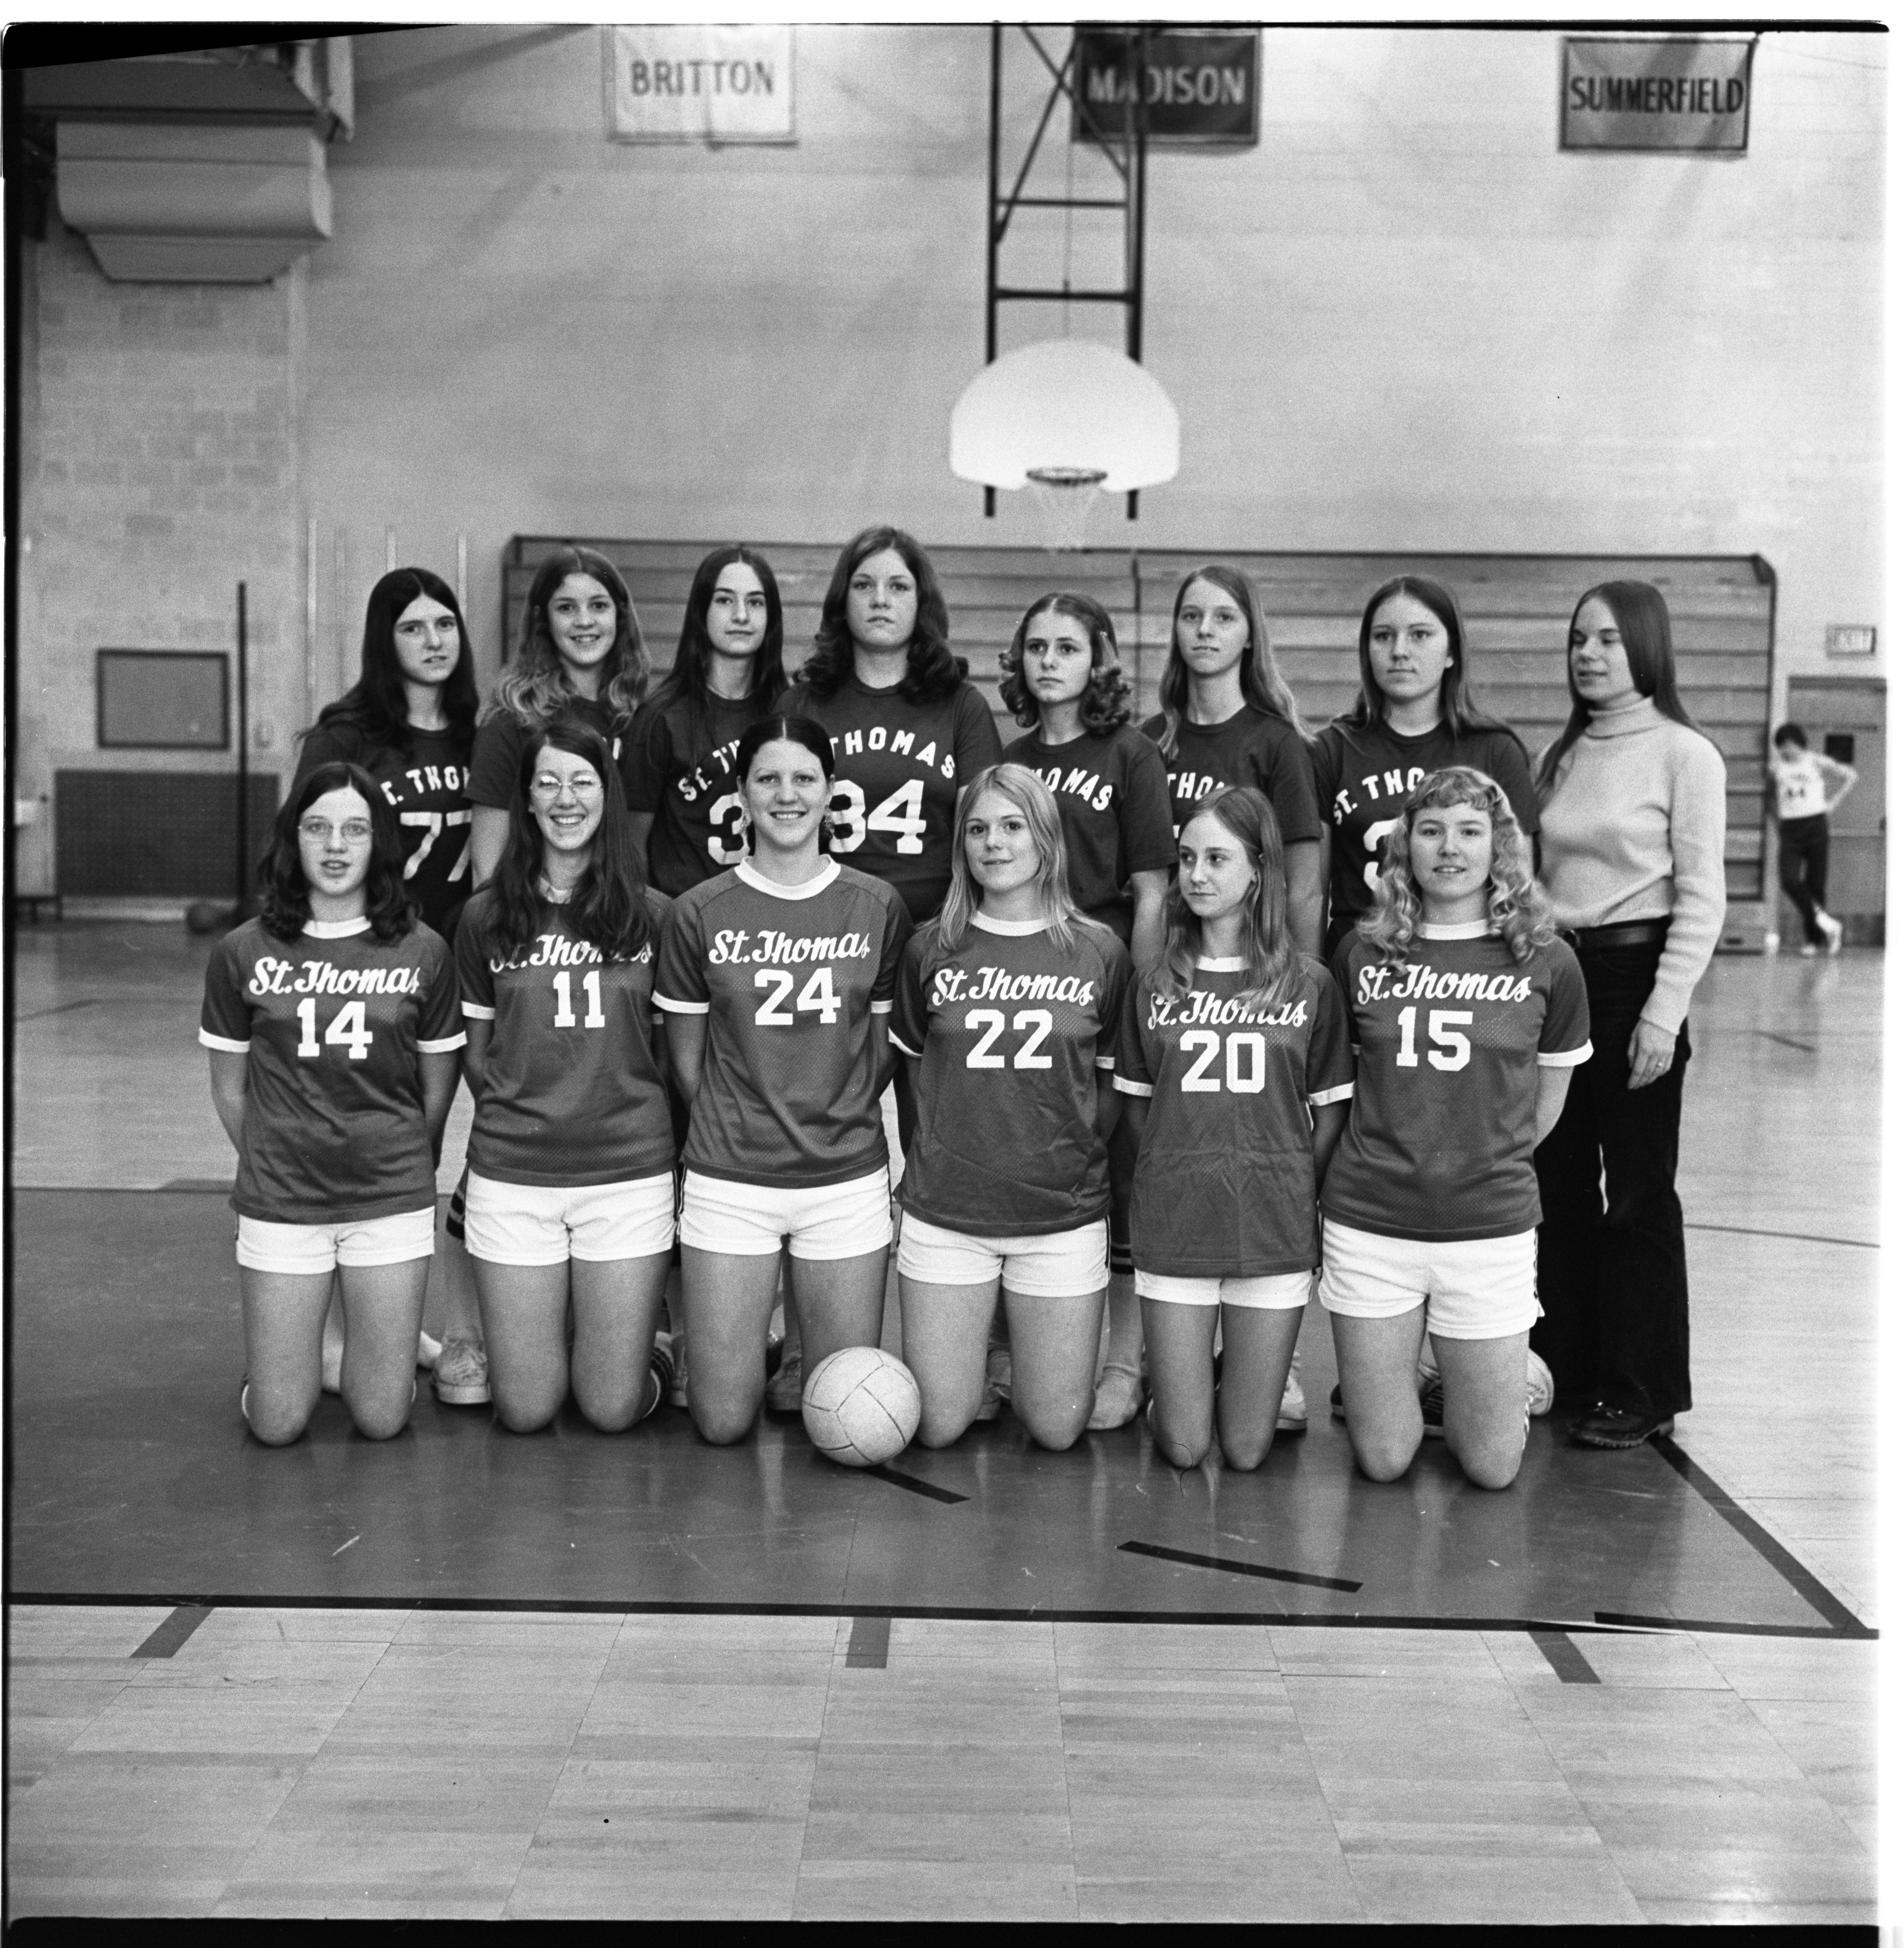 St. Thomas Girls' Volleyball Team, March 1974 image